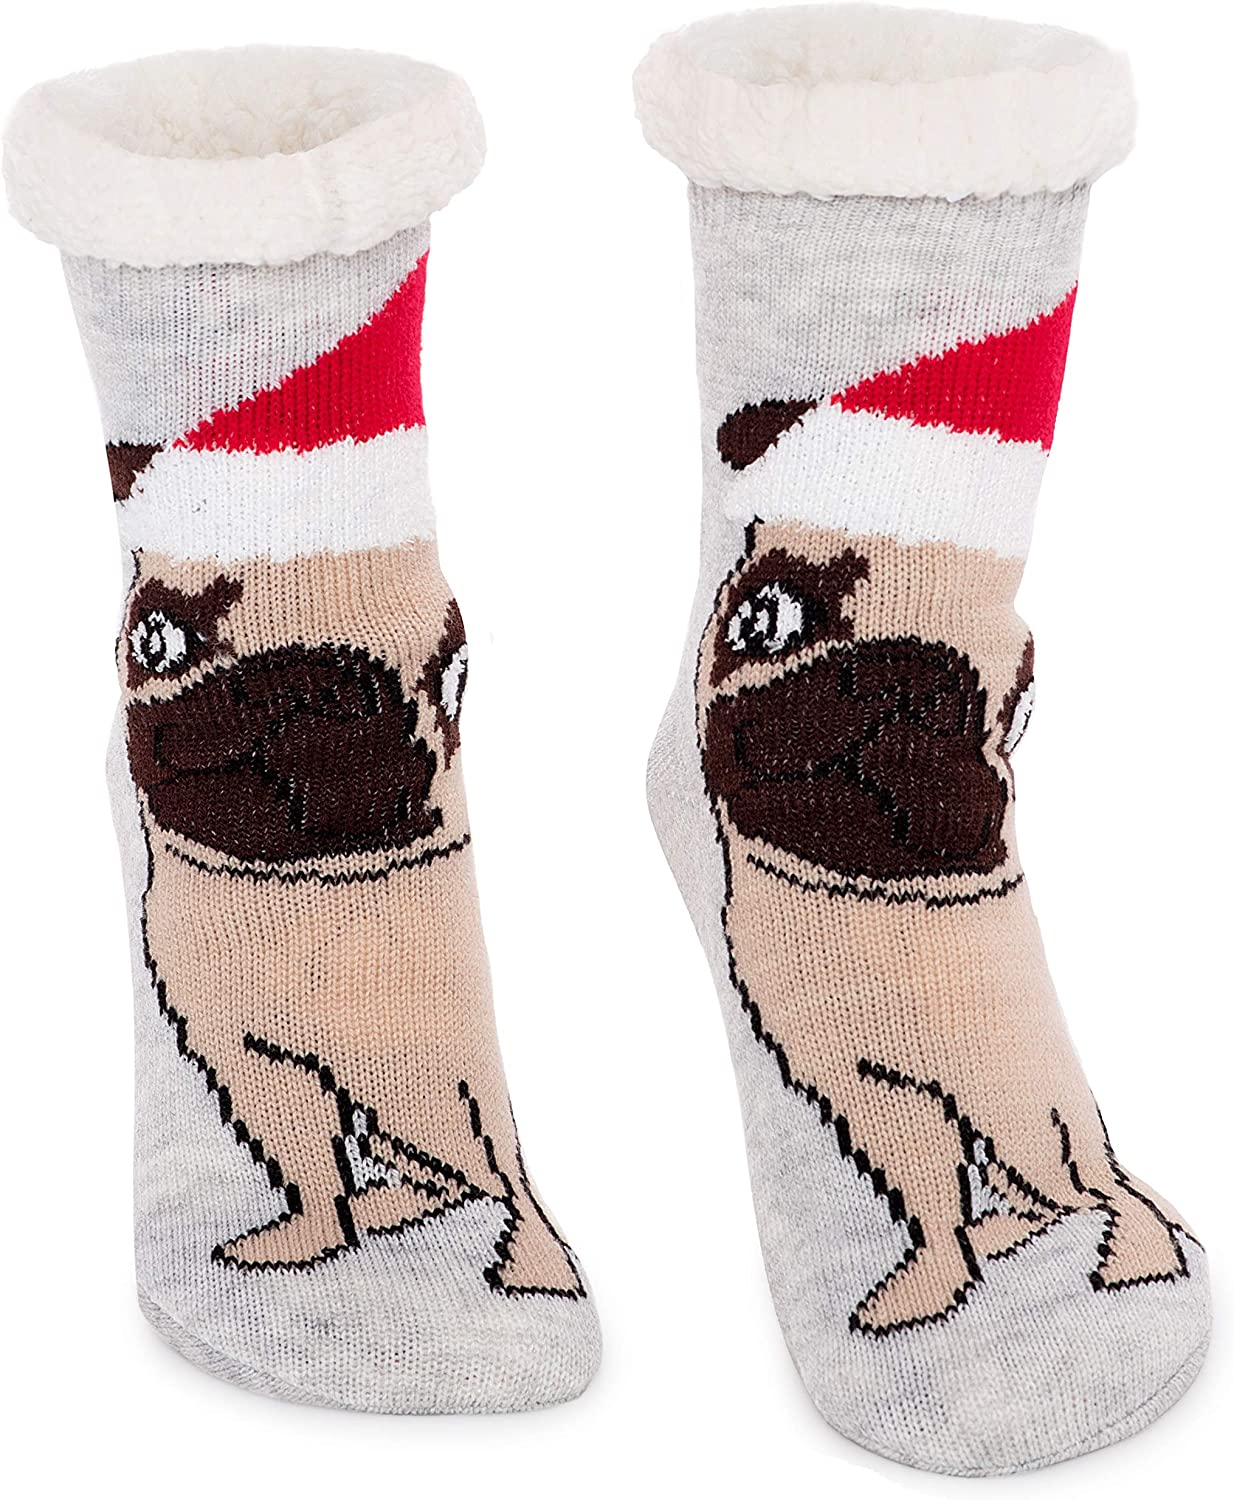 Women's Max 63% OFF Faux Fur Fuzzy Winter Max 53% OFF Socks Grippers with Animal